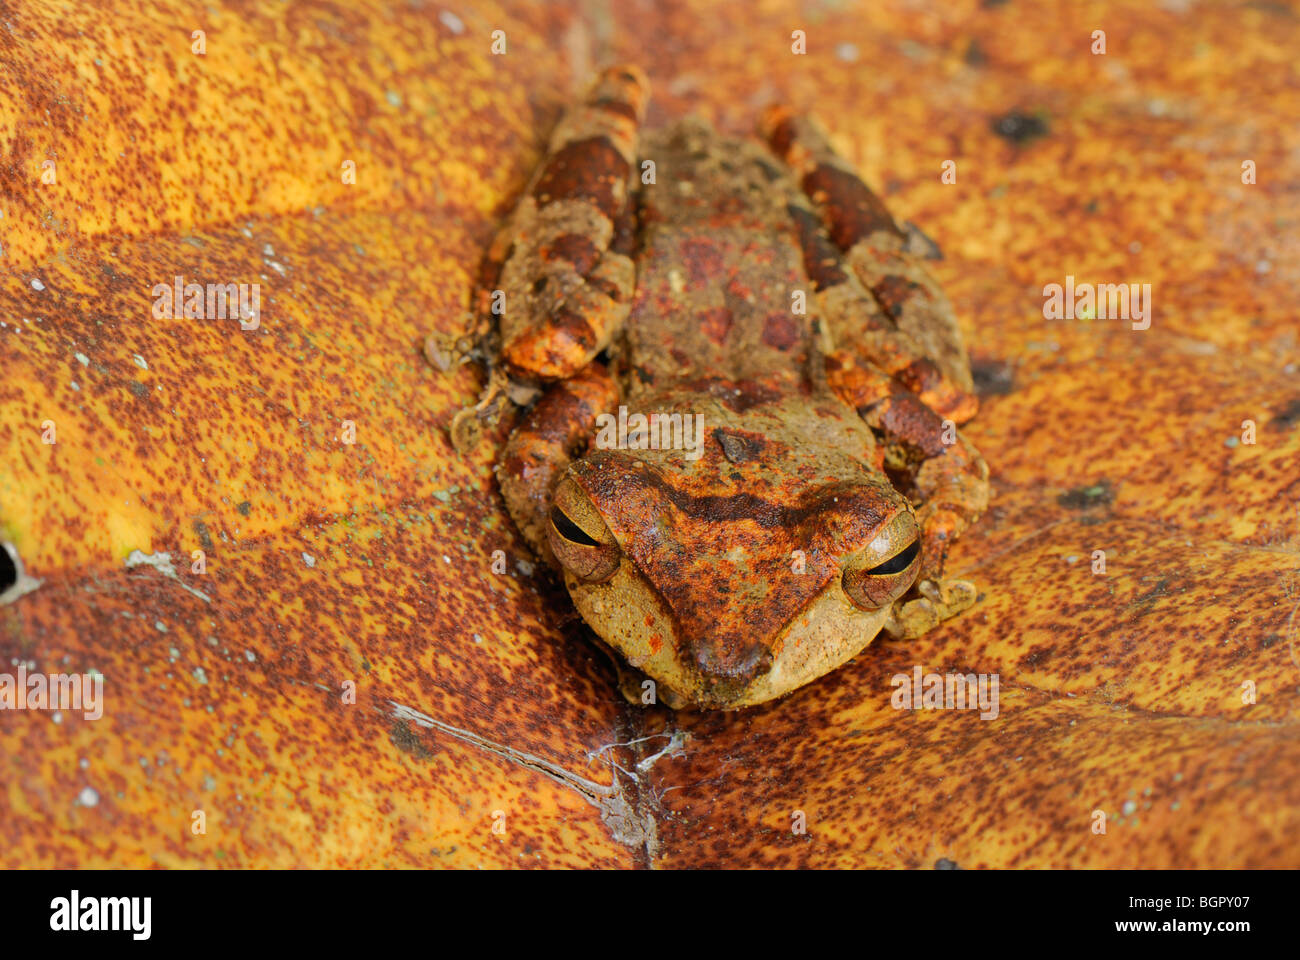 Asian Tree Frog, Danum Valley Conservation Area, Sabah, Borneo, Malaysia, Asia - Stock Image